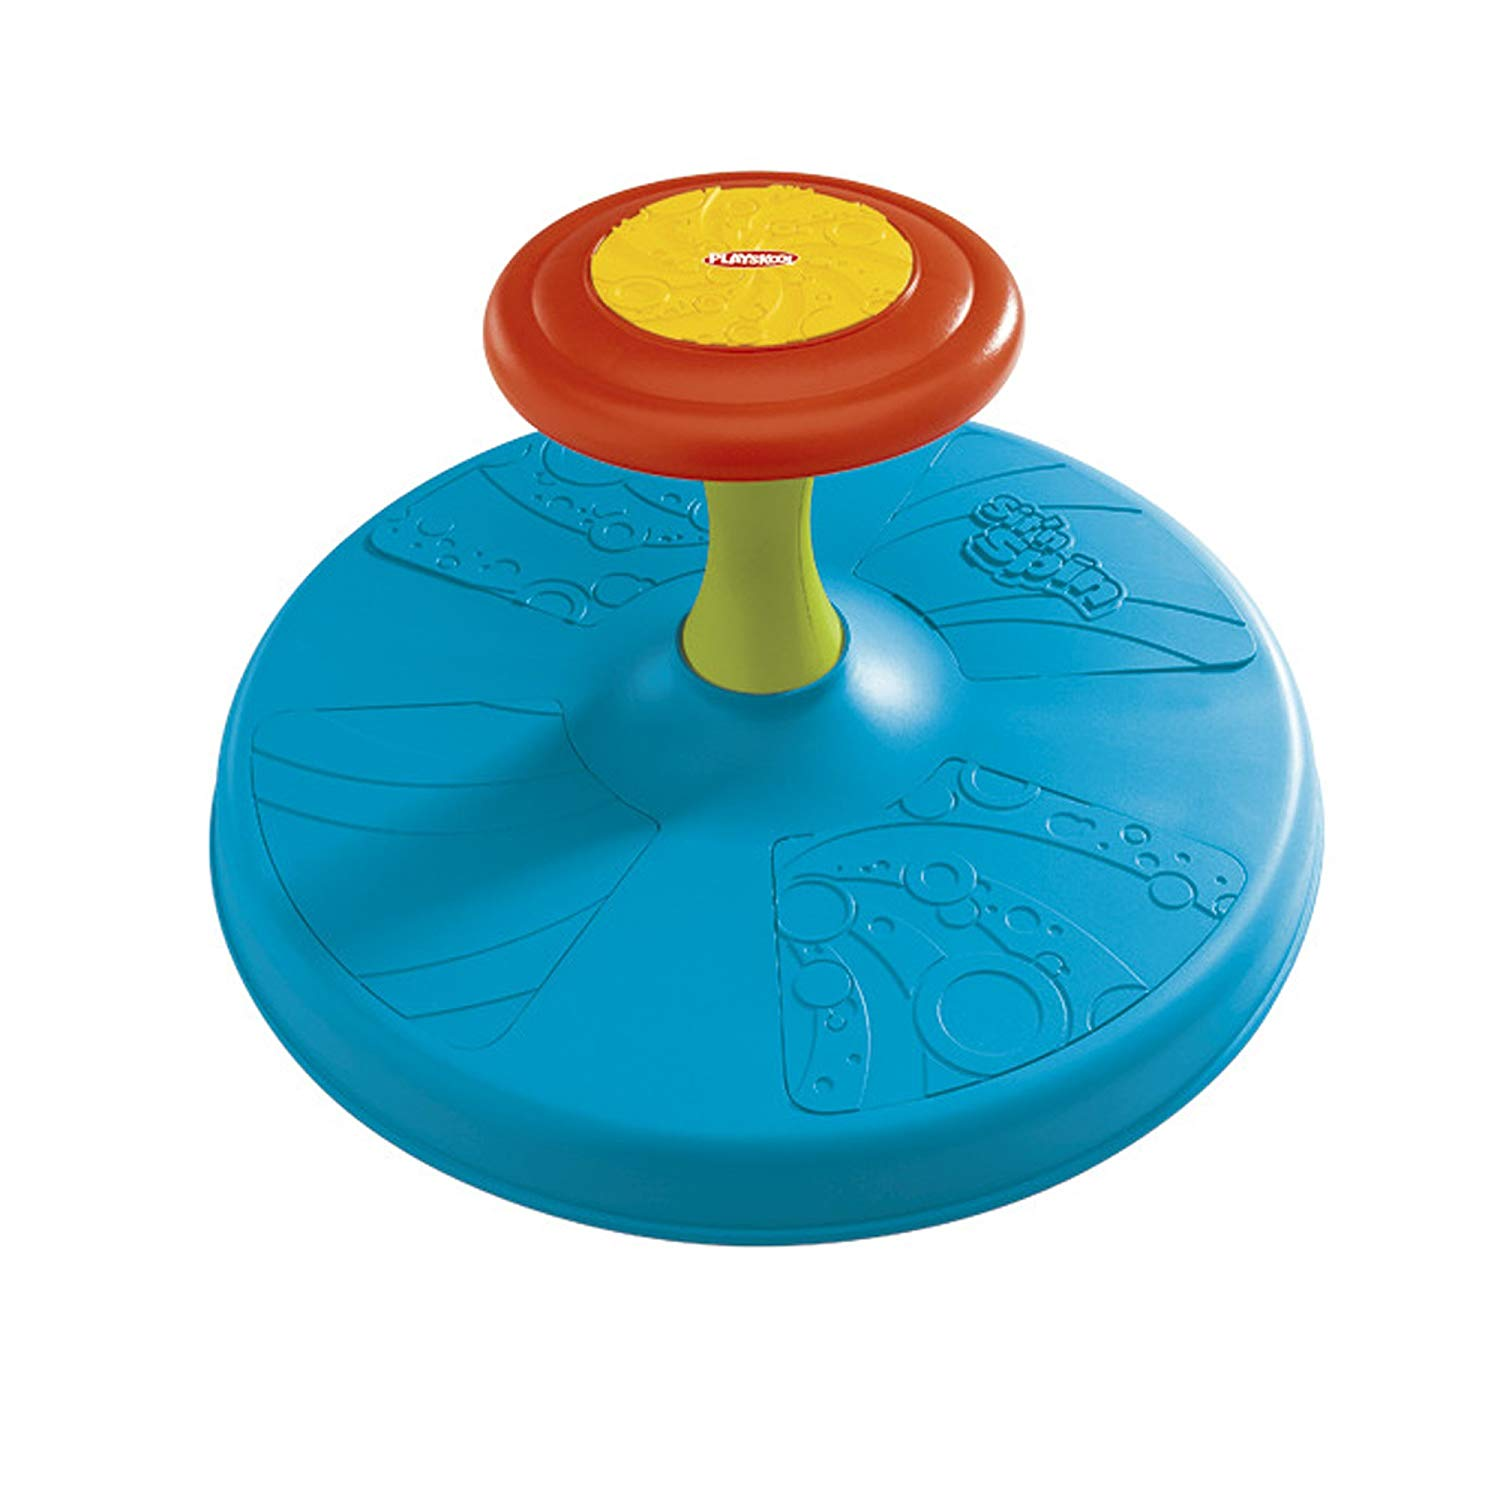 this is age 2+ .. and I'm pretty sure i remember this being one of my favorite toys ever.